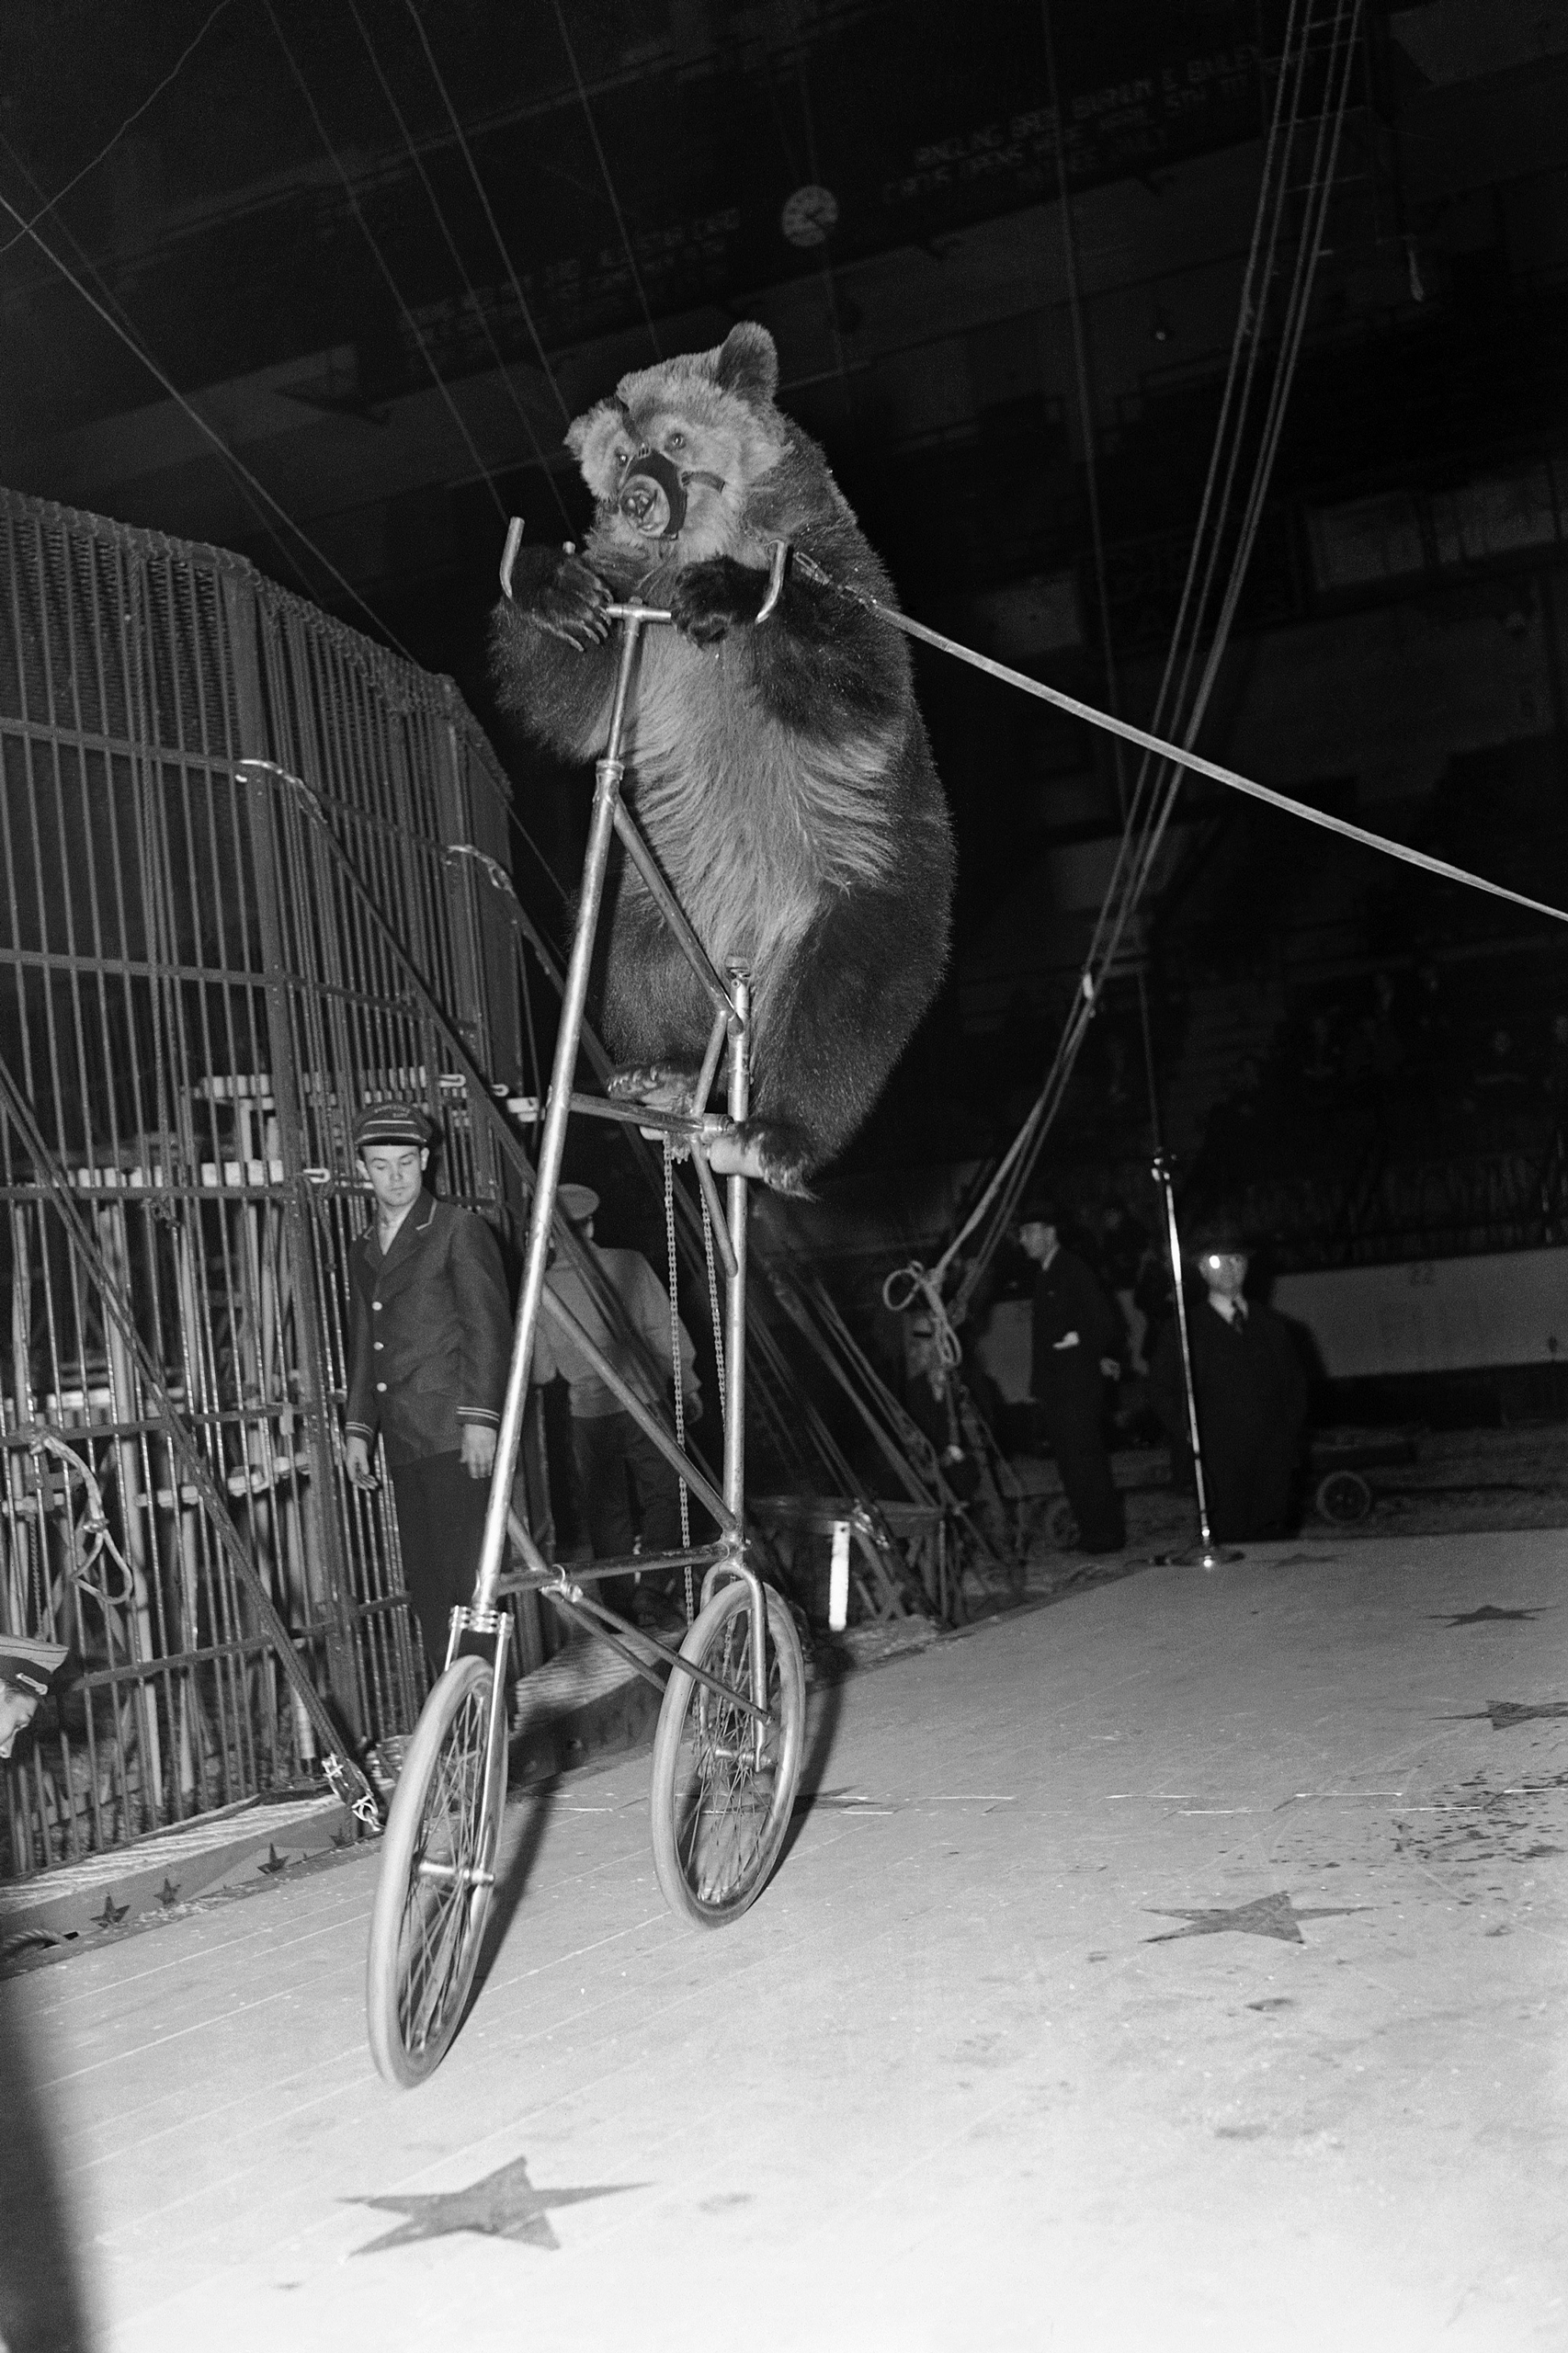 Circus bear  Fritz  seems none too pleased with his predicament as he pedals his  high strung  bicycle around at the opening of the Ringling Brothers and Barnum & Bailey Circus at Madison Square Garden in New York on April 5, 1939.